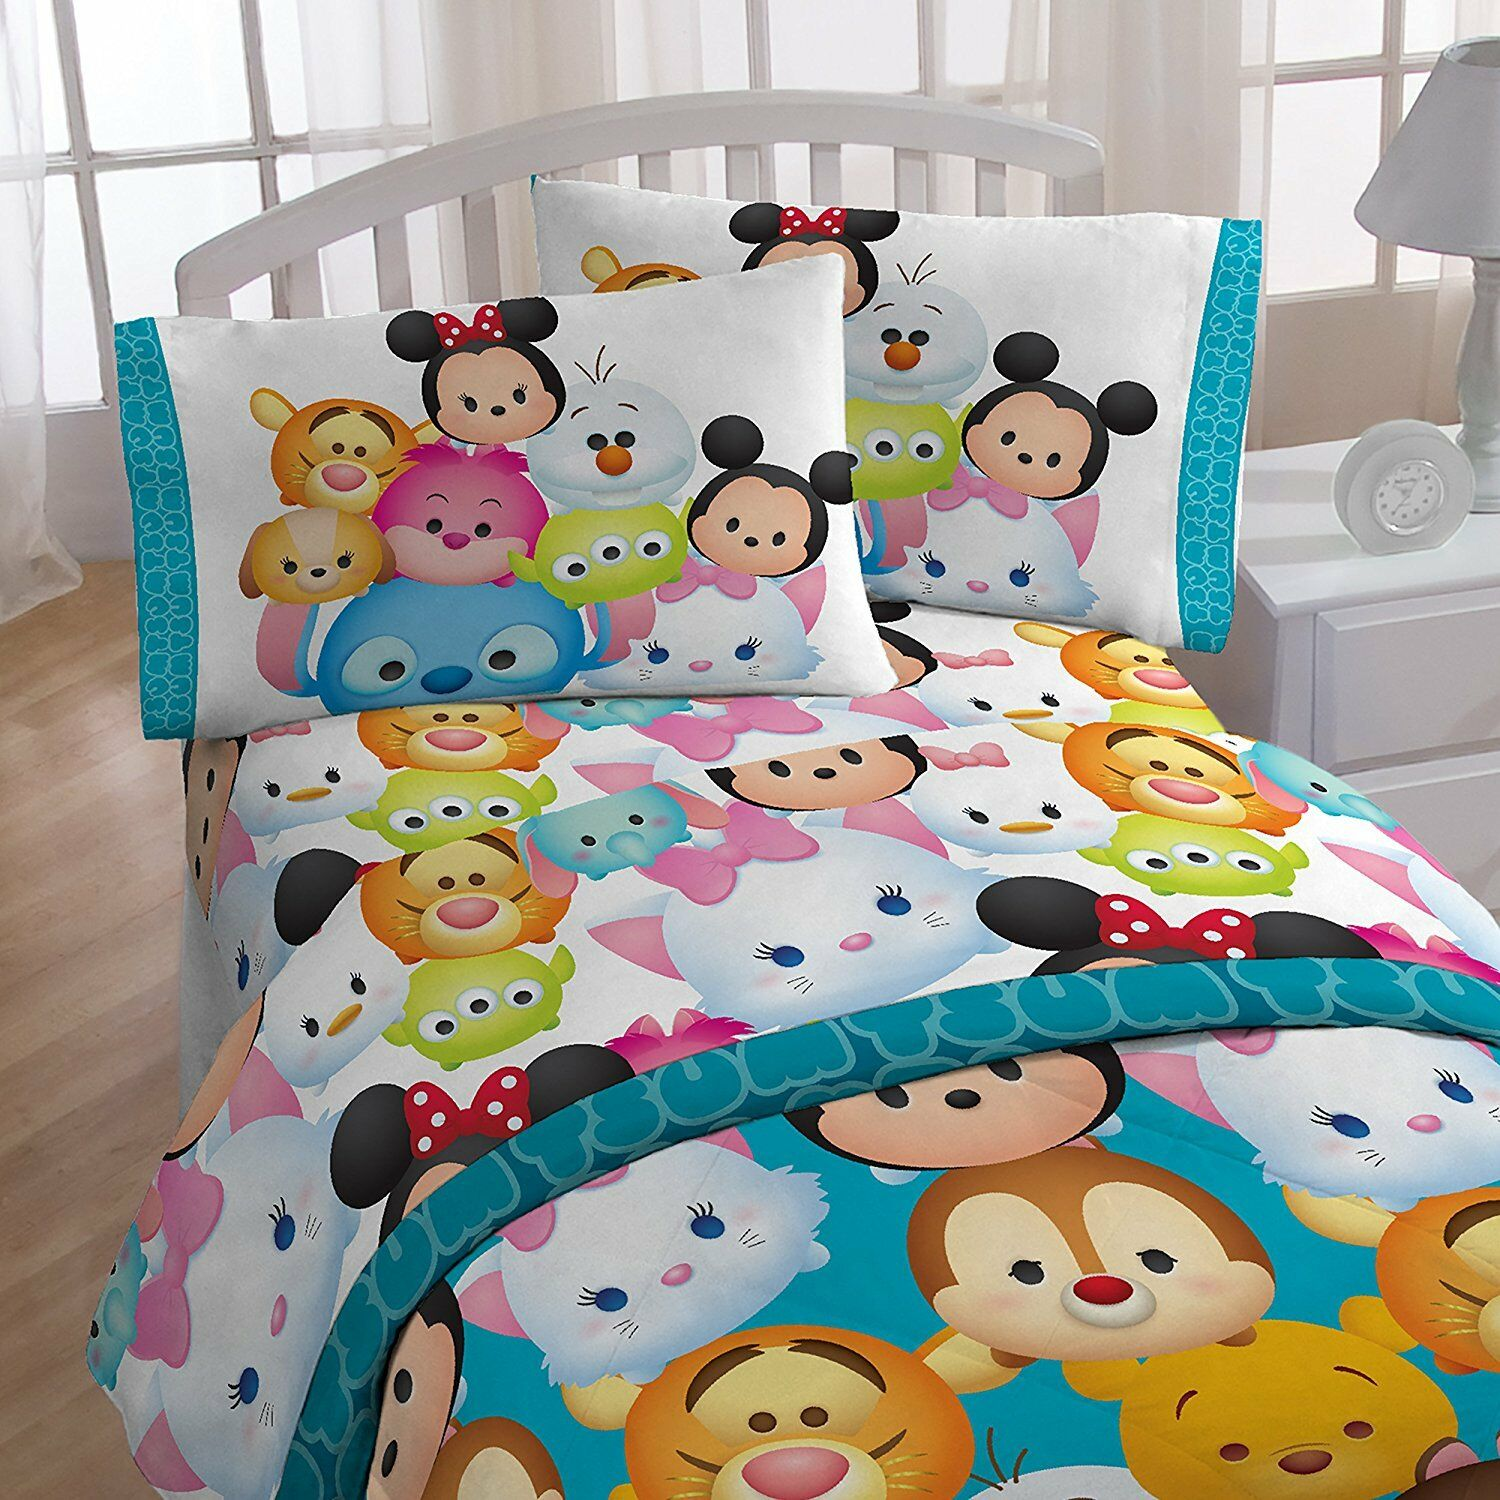 Kid Bed Sheet Cheaper Than Retail Price Buy Clothing Accessories And Lifestyle Products For Women Men